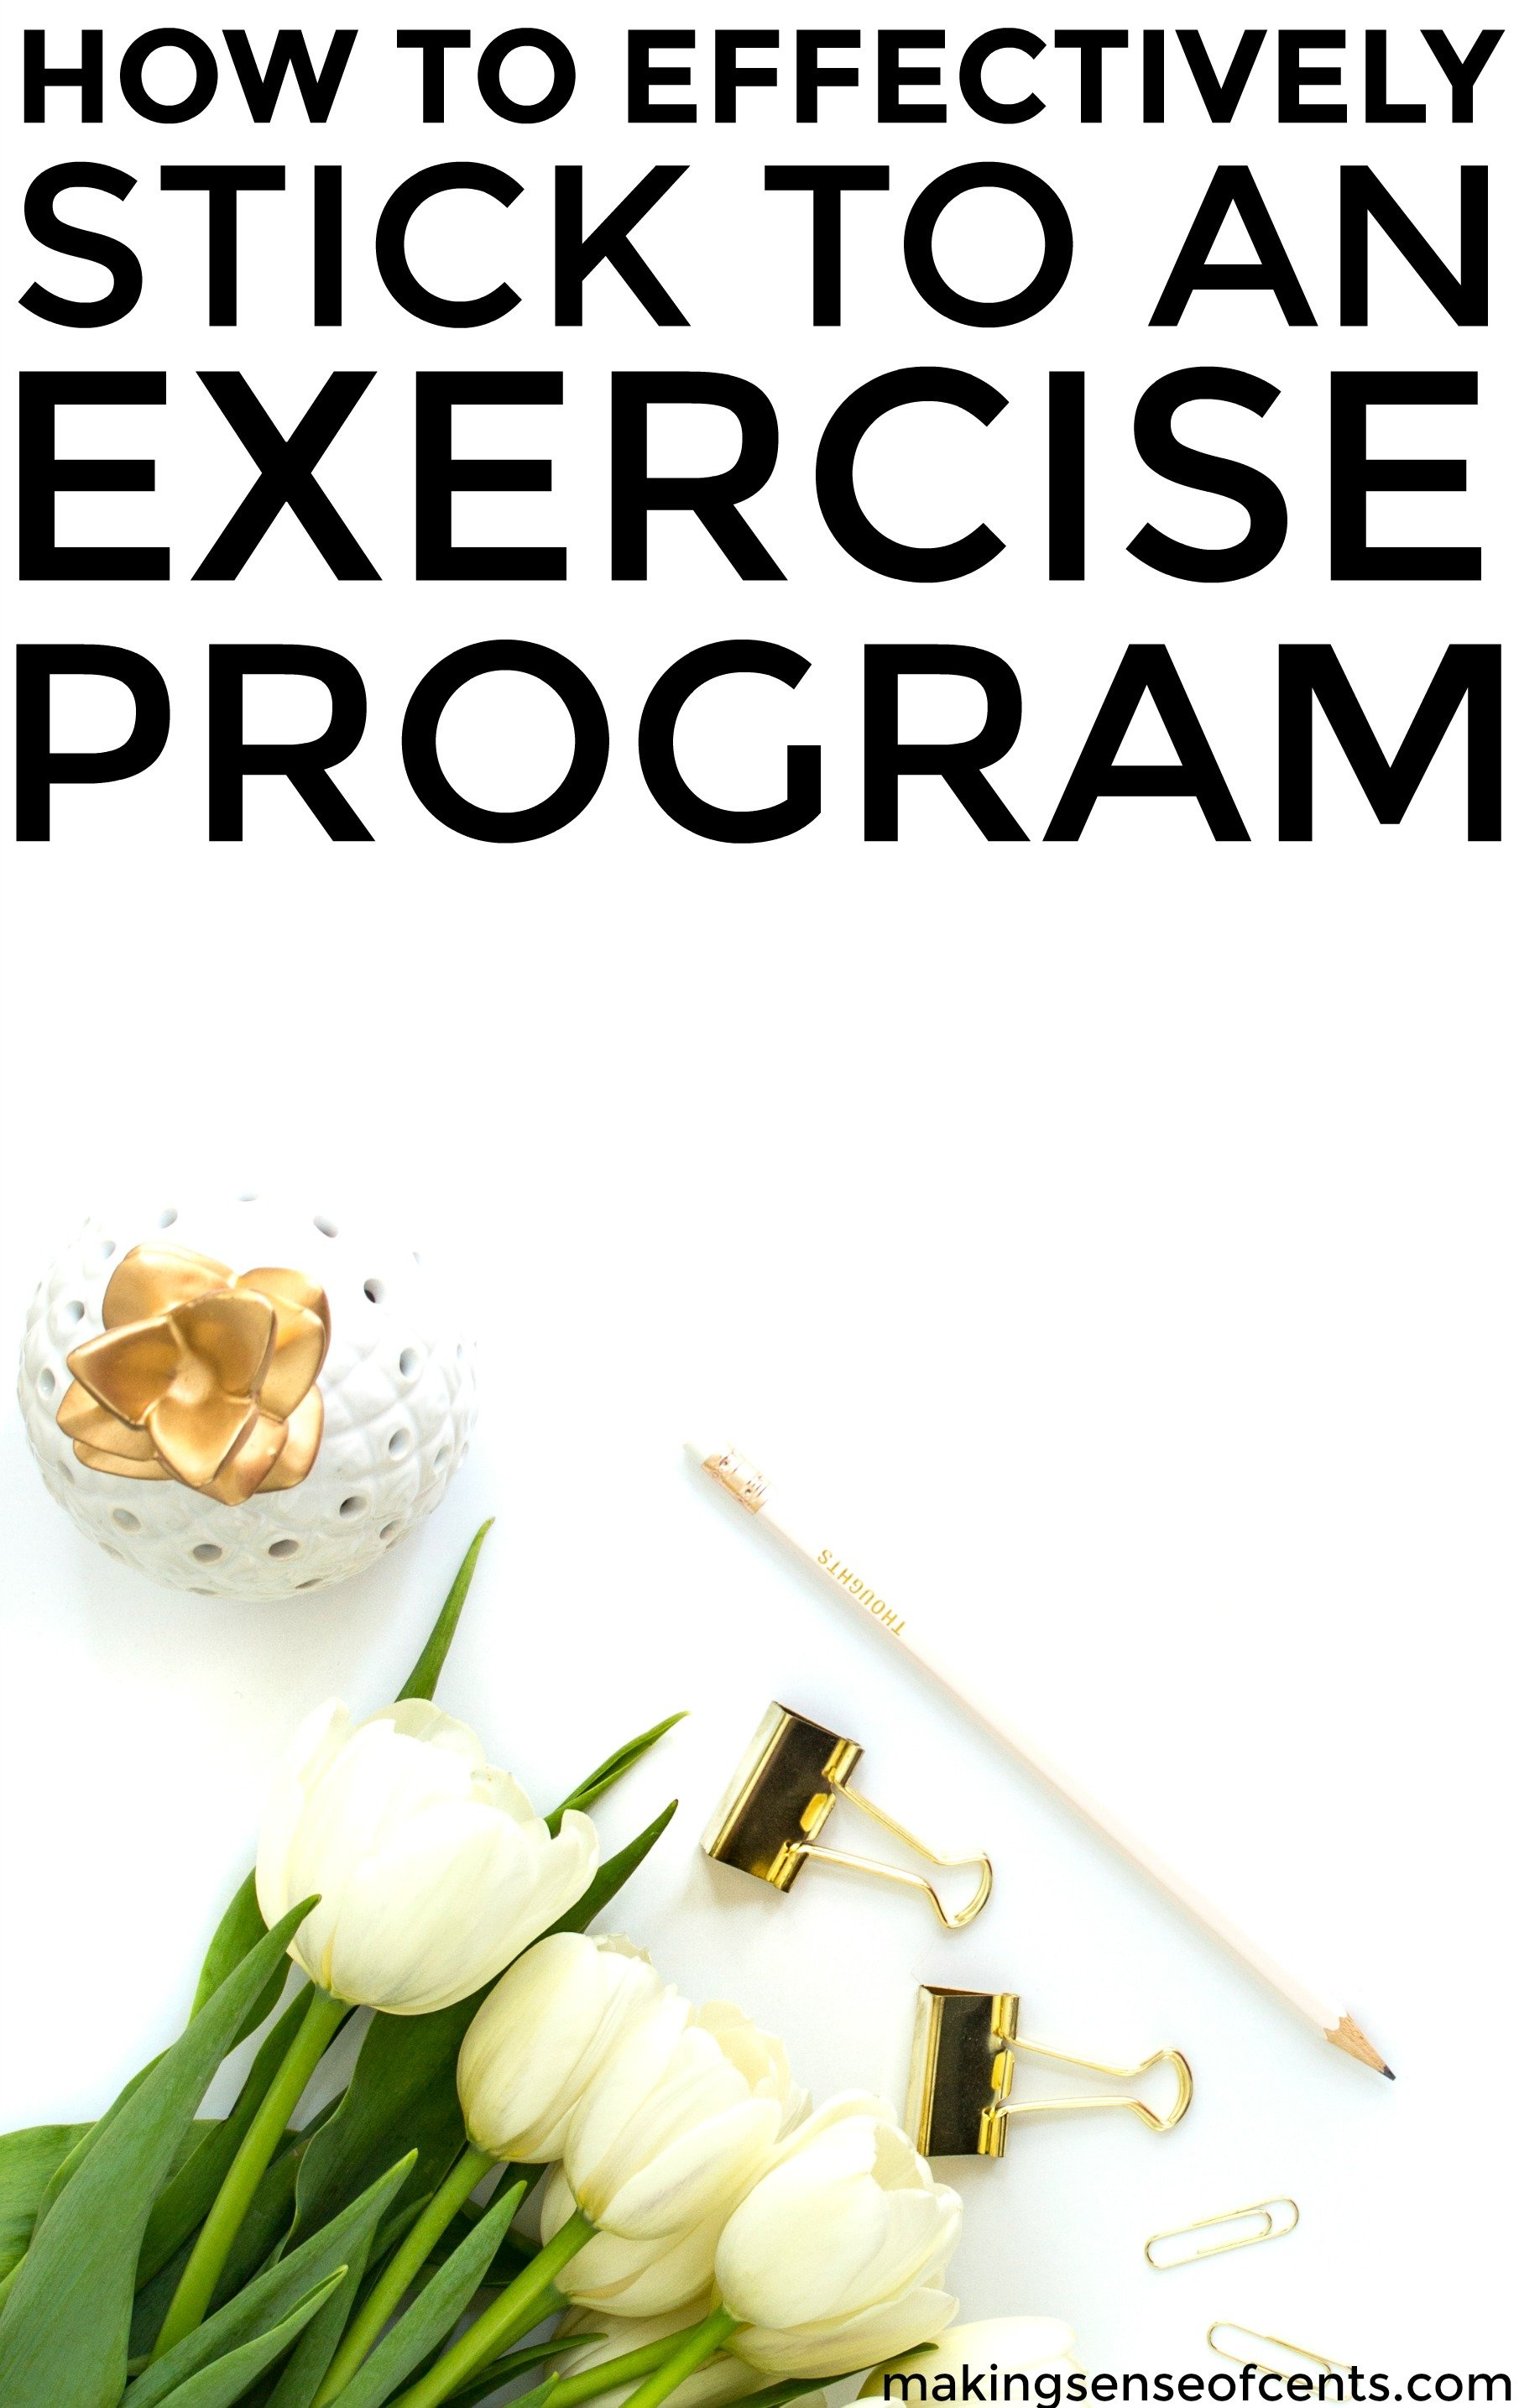 Find out how to effectively stick to an exercise program. This is a great list!